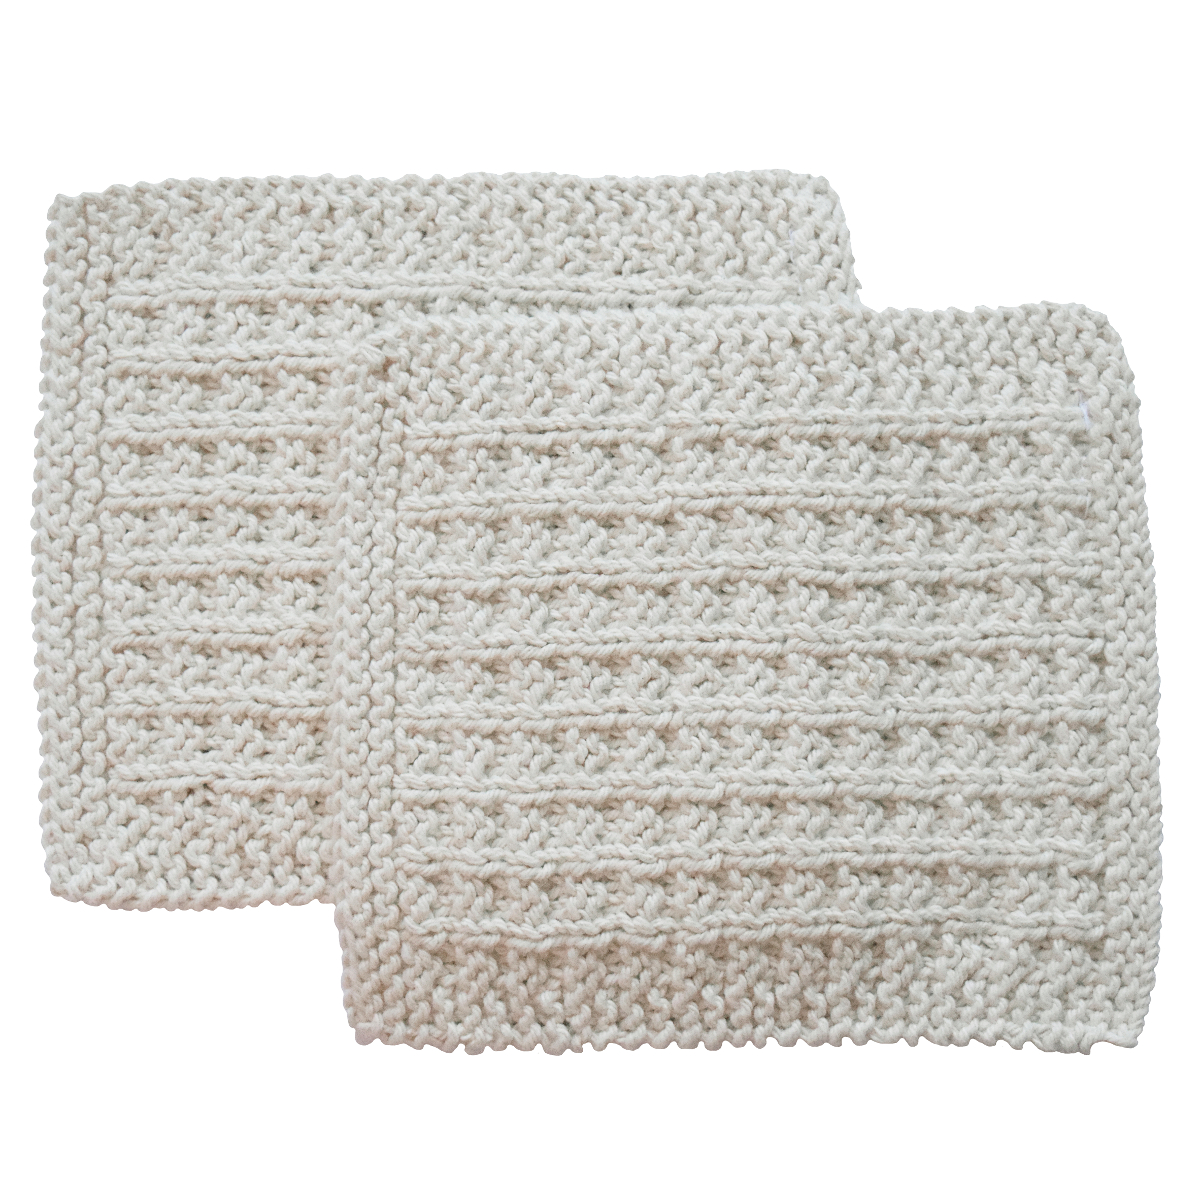 Toockies Organic Cotton His Wash Cloth, Set of 2